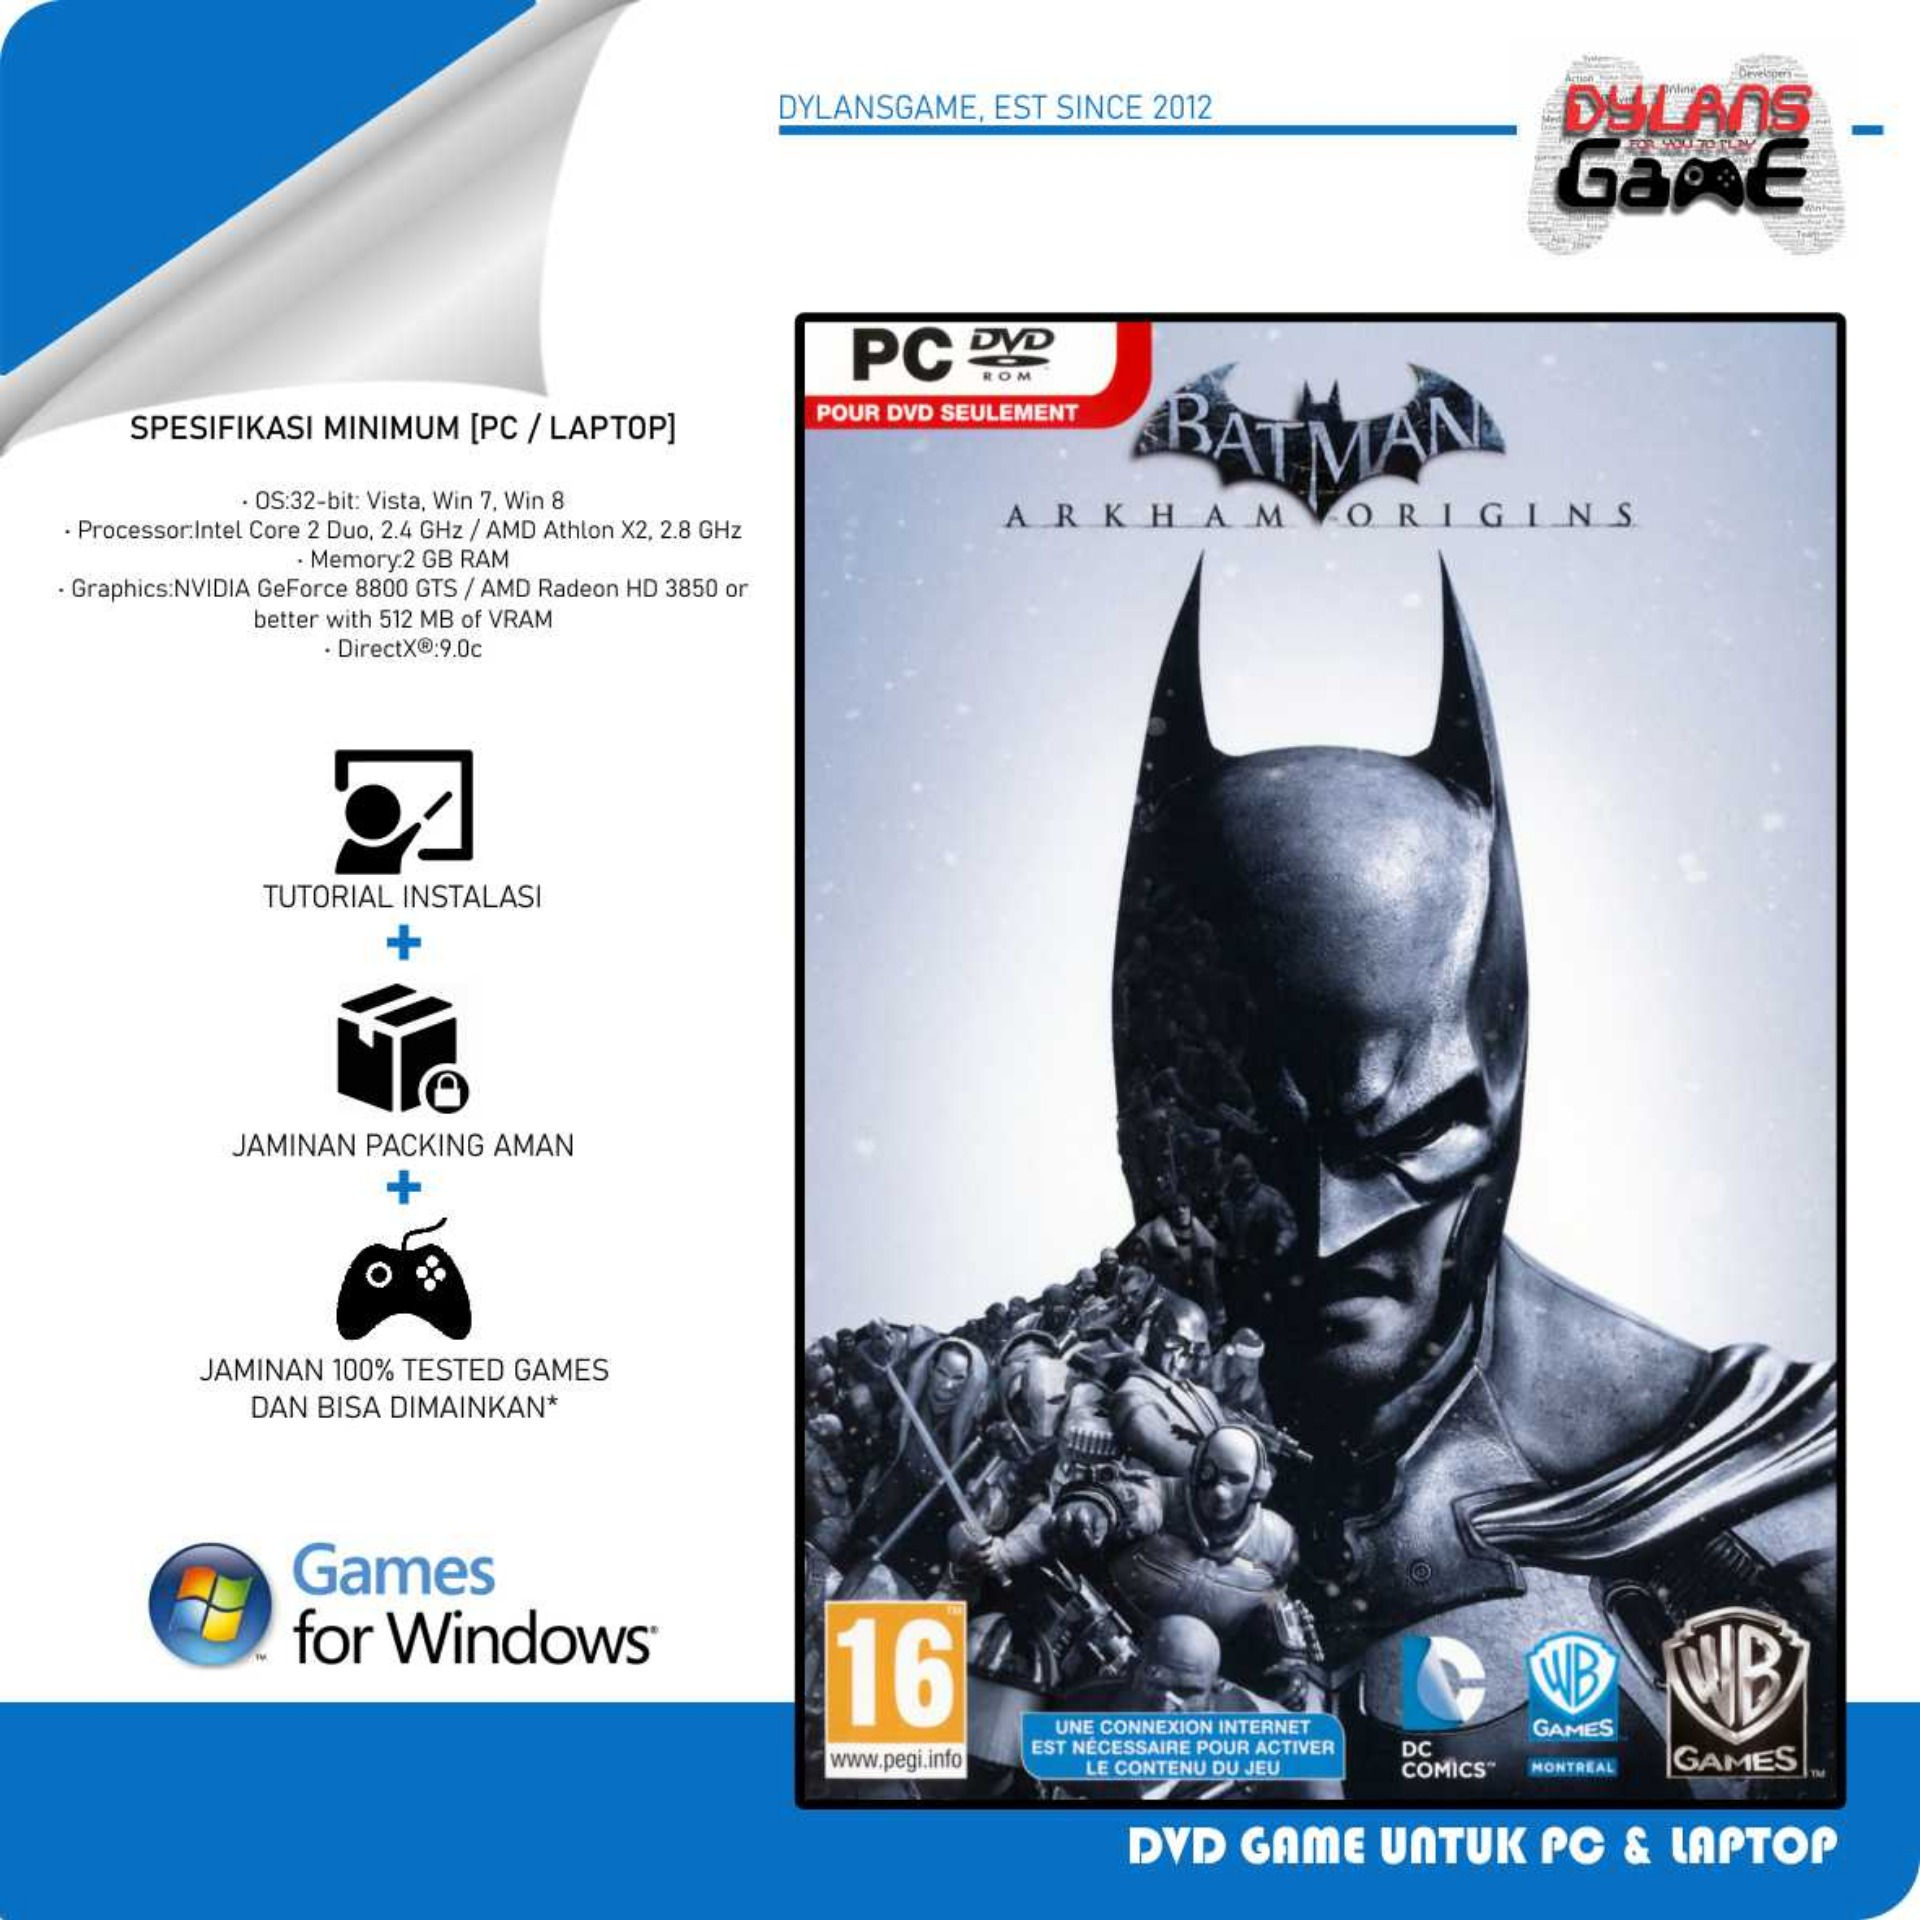 https://www.lazada.co.id/products/batman-arkham-origins-pc-game-dvd-game-pc-laptop-i304070319-s304092971.html